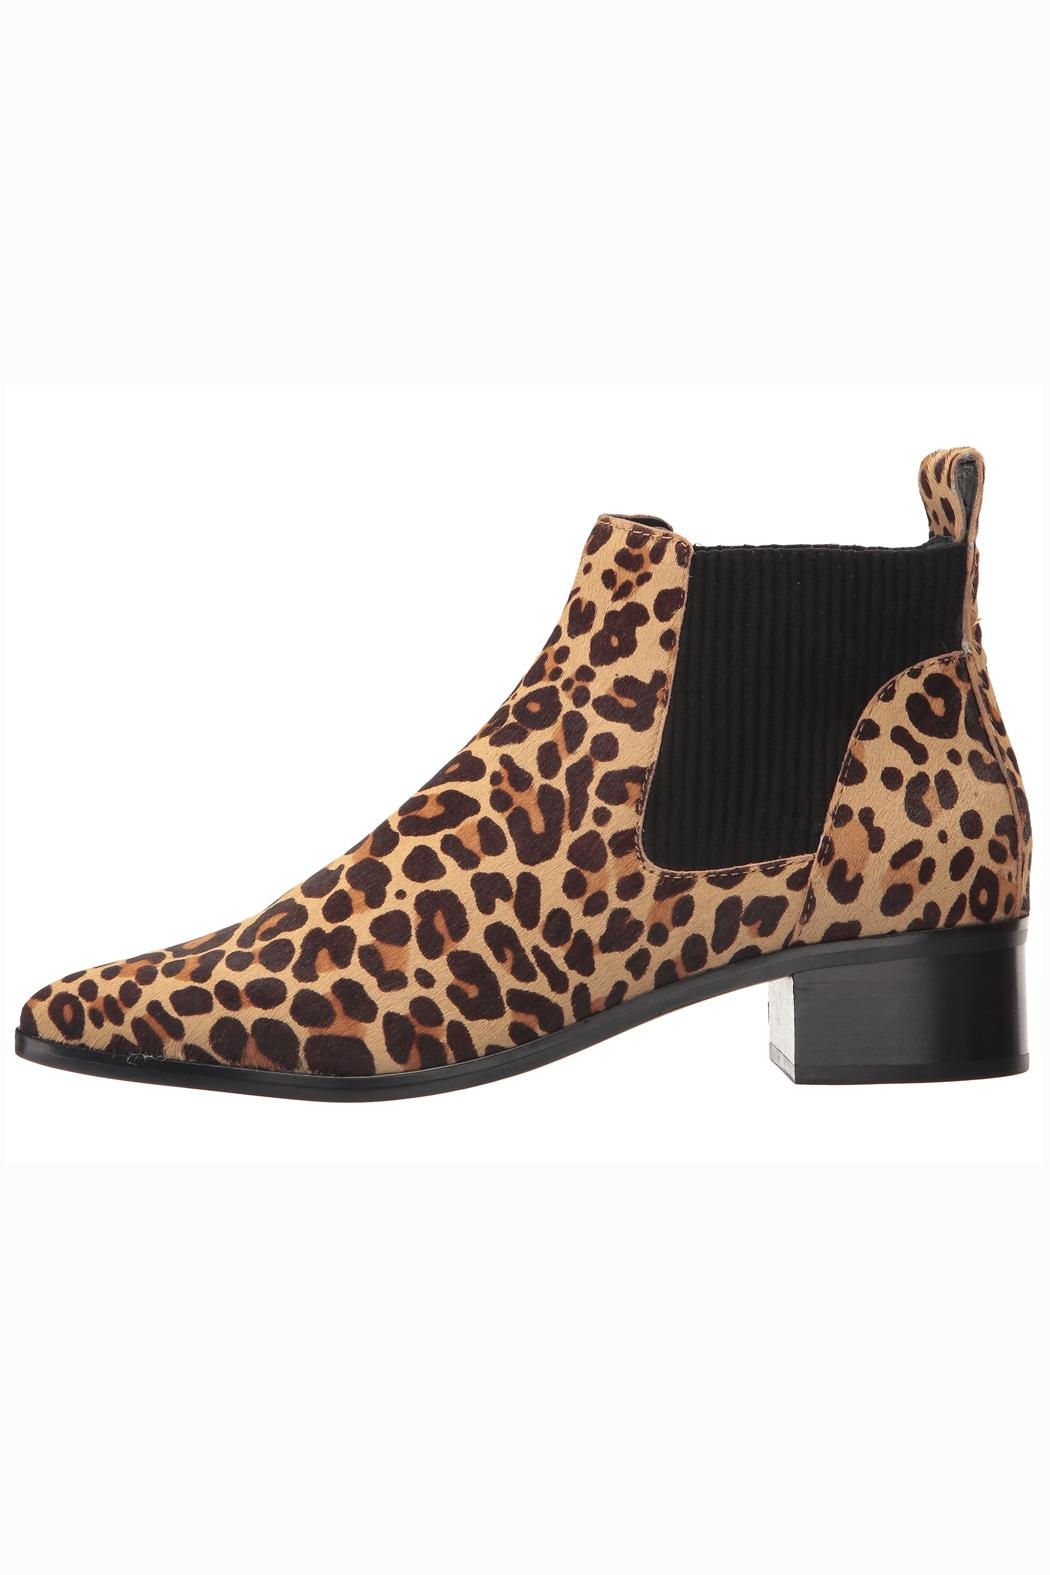 Dolce Vita Leopard Booties - Side Cropped Image